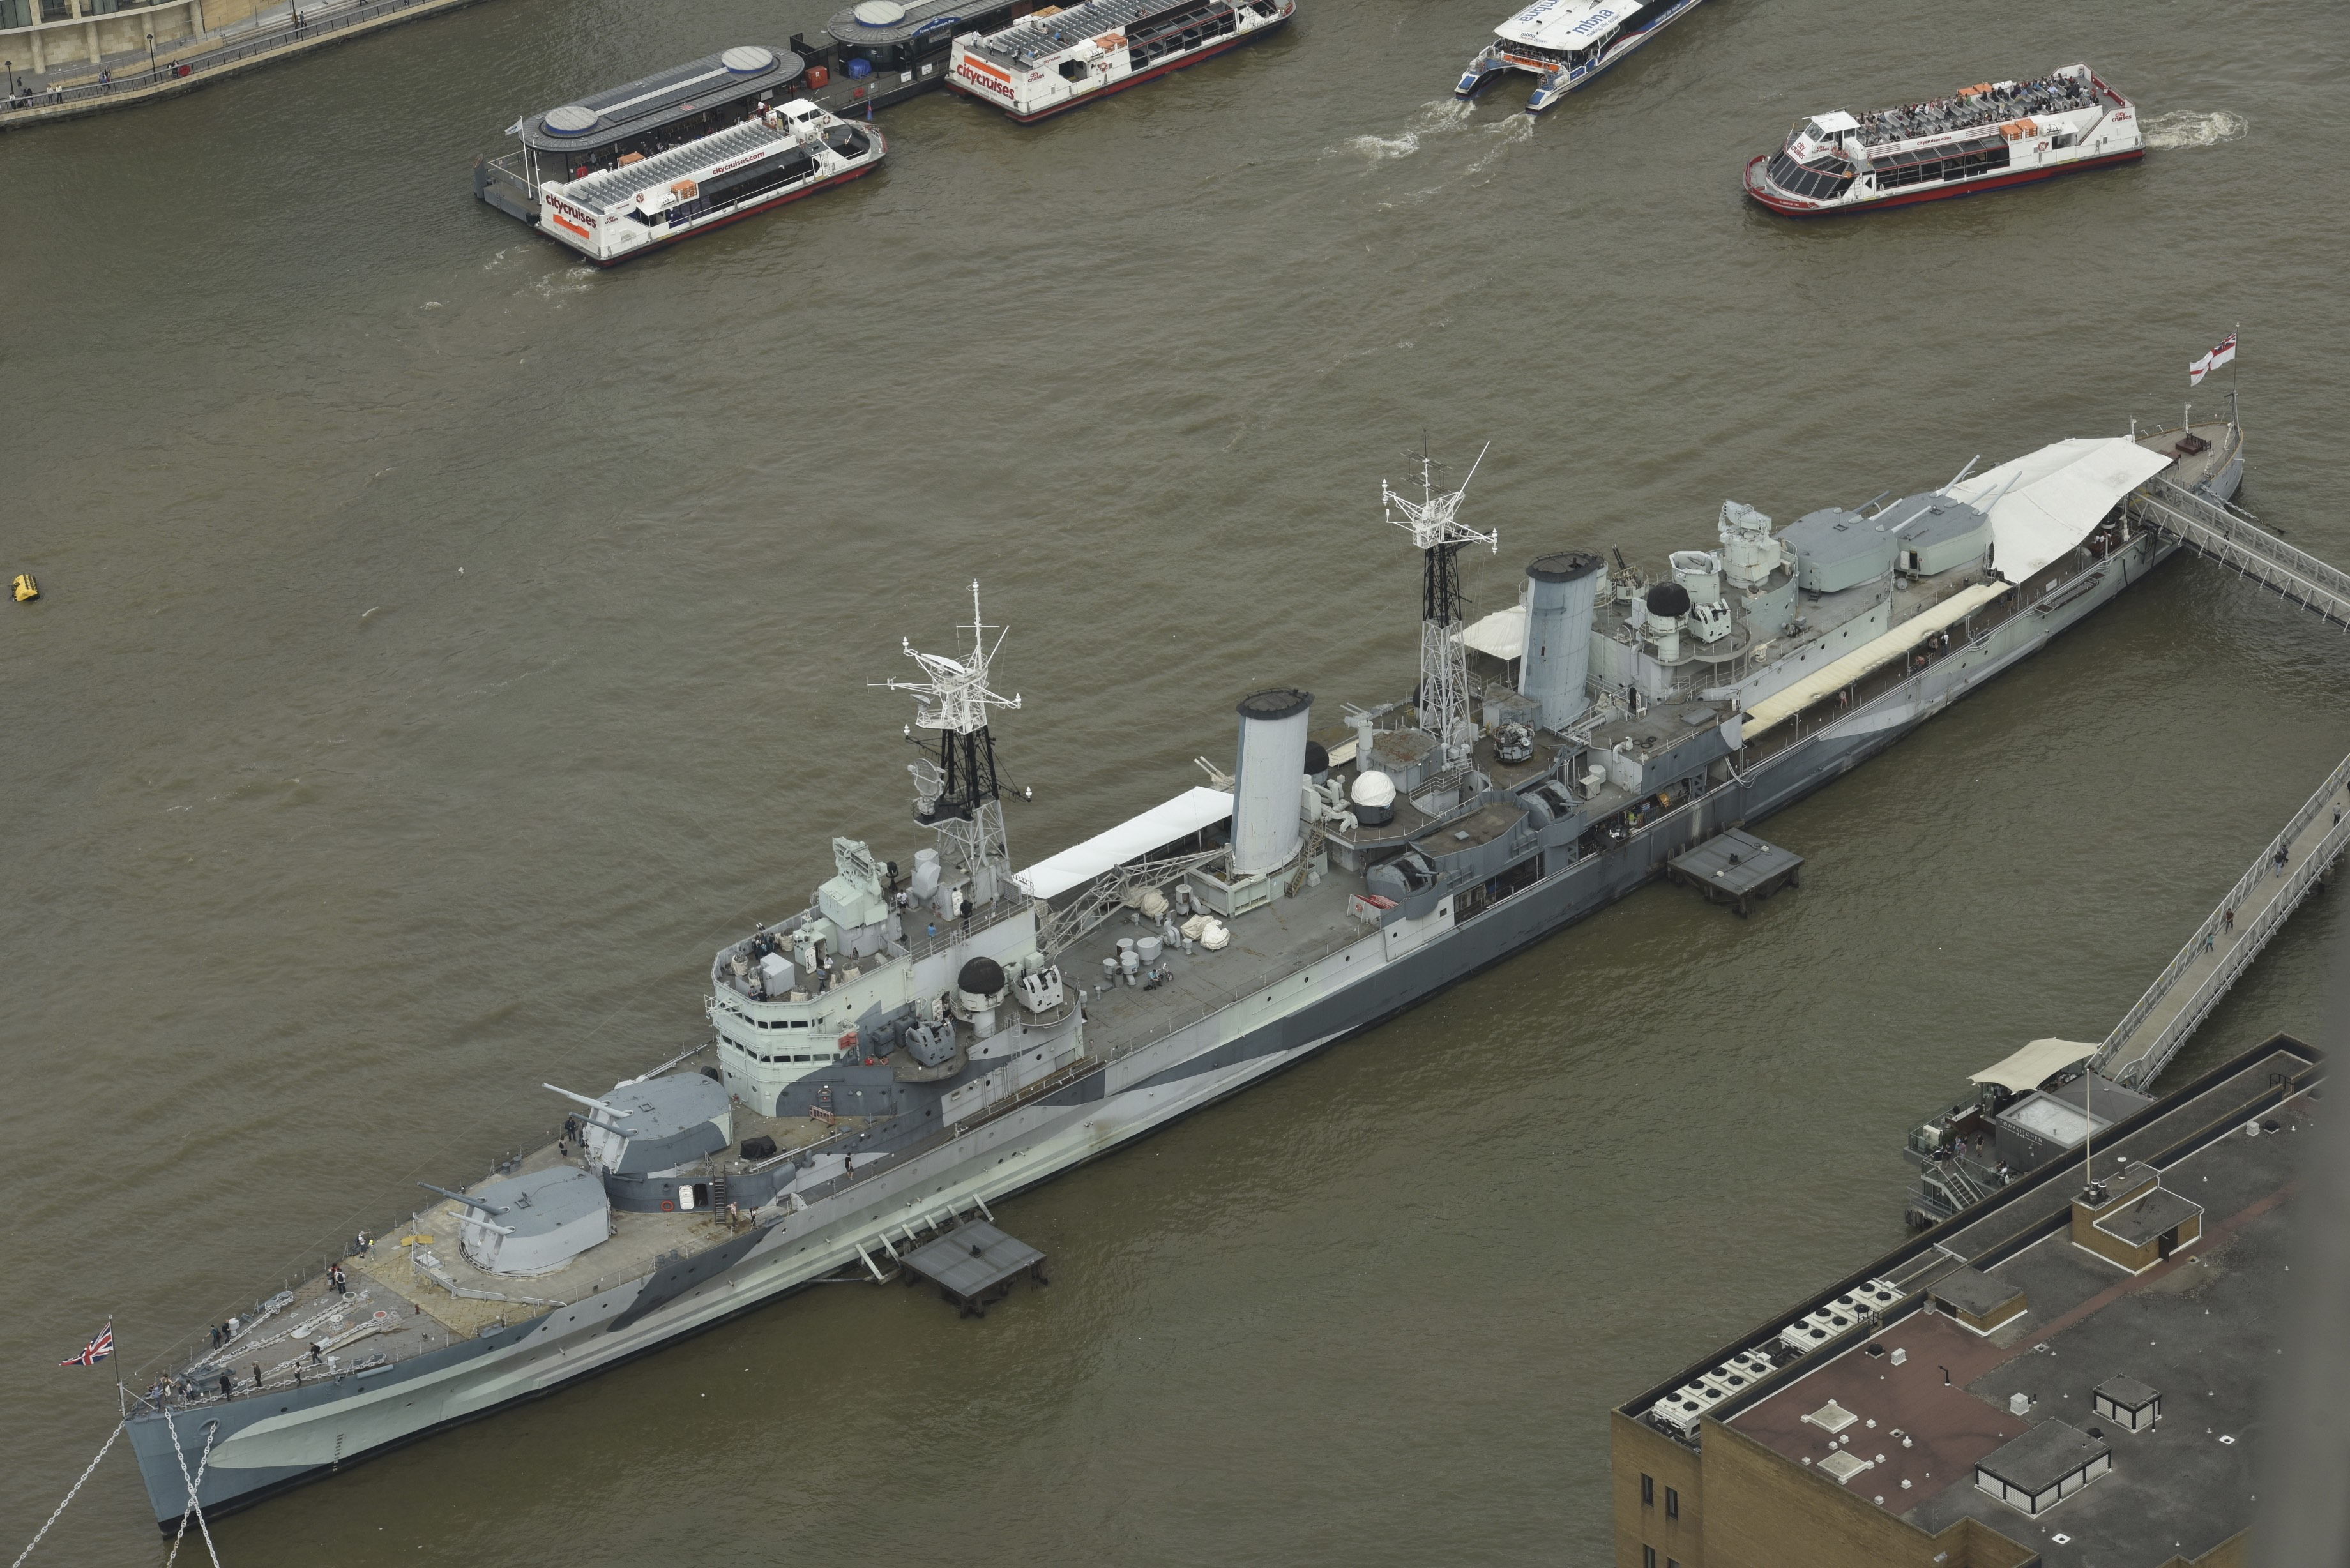 HMS Belfast Docked on the Thames, as pictured from the Shard